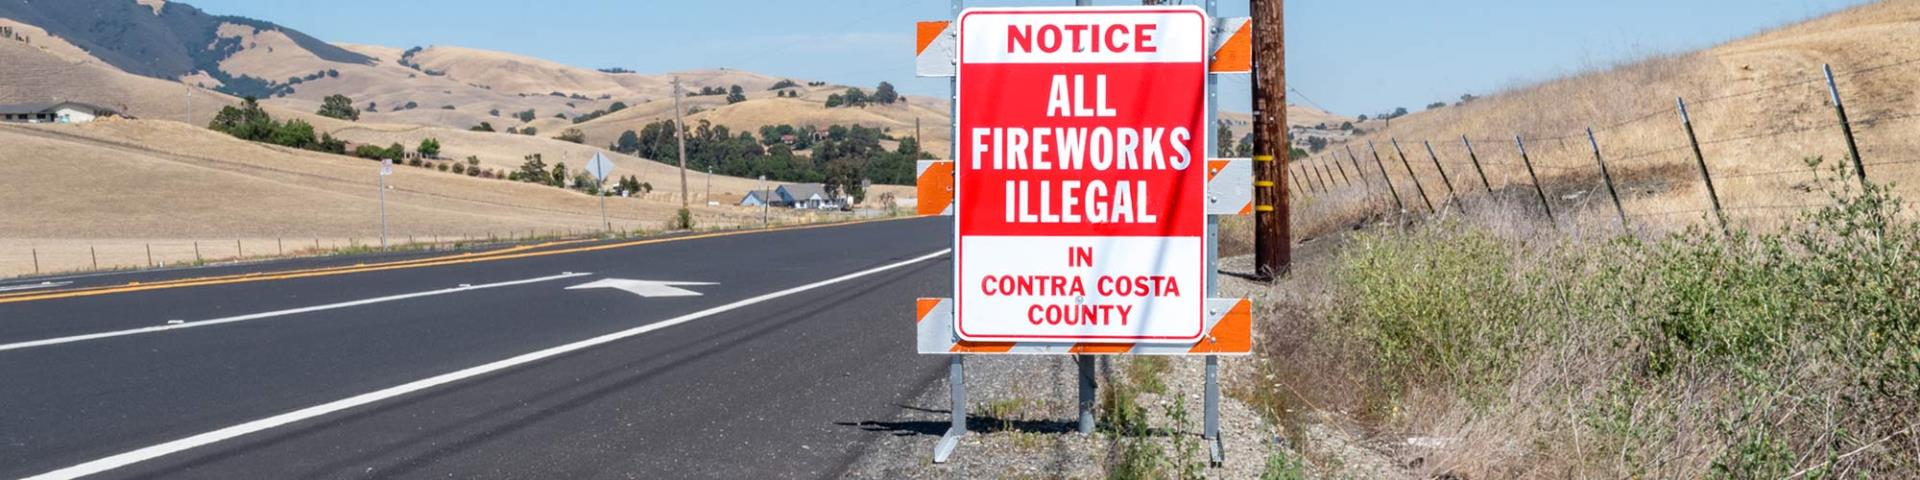 Fireworks Illegal Sign